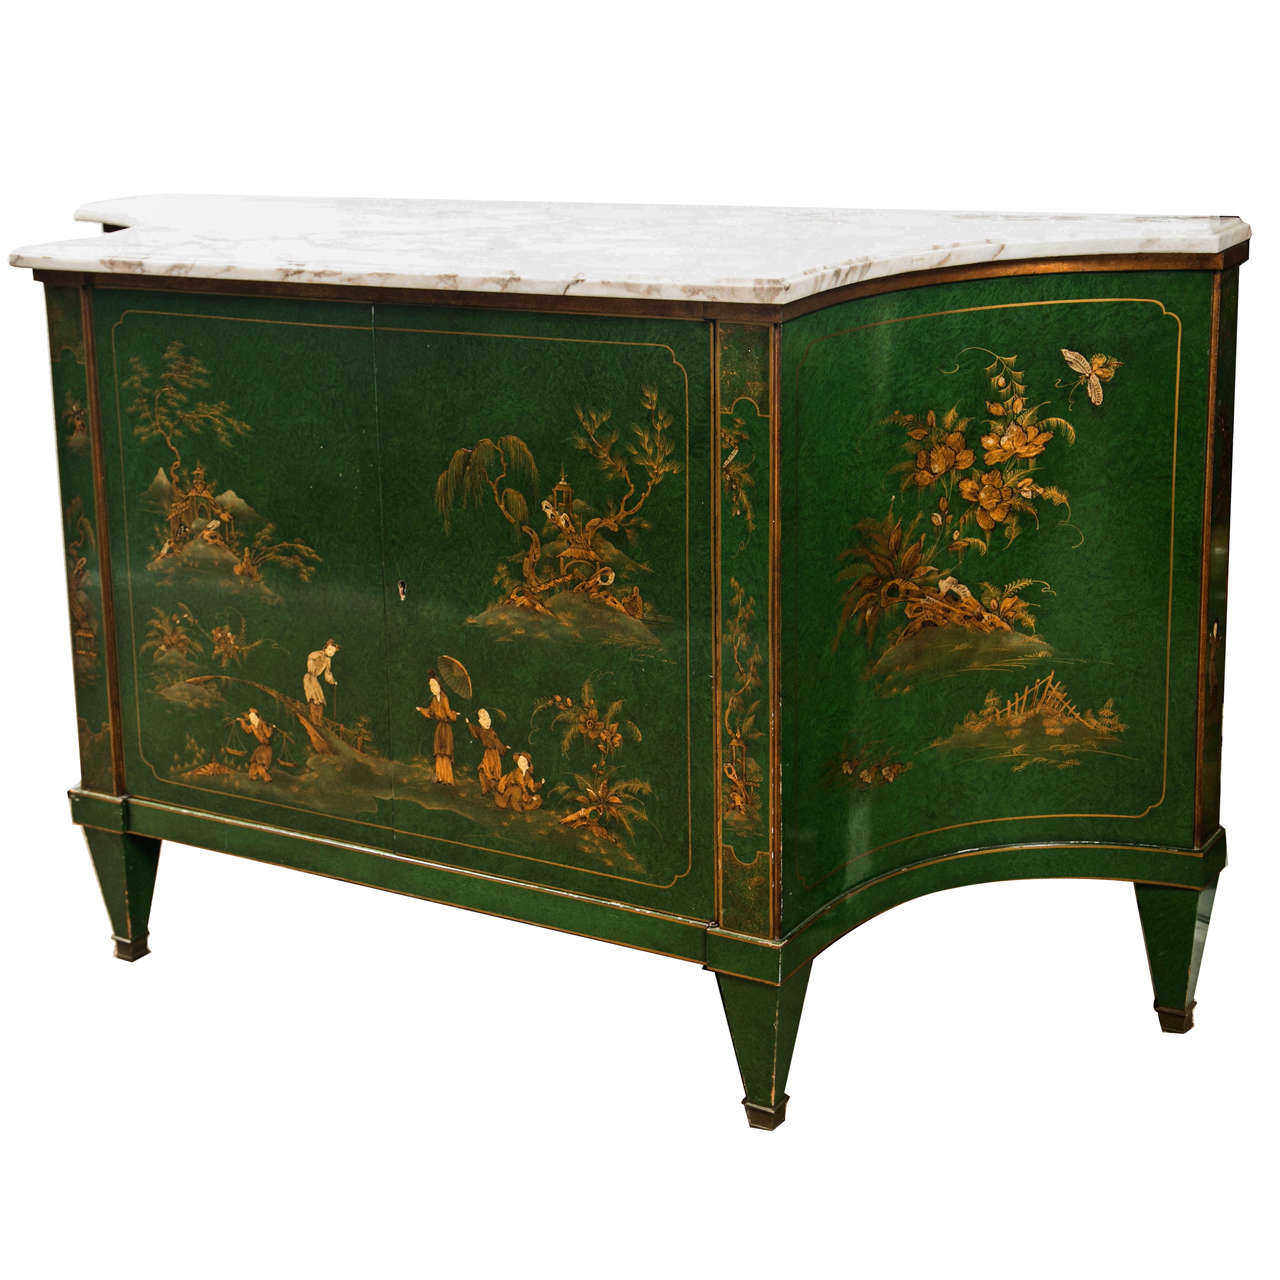 French Chinoiserie Style Sideboard by Maison Jansen 1